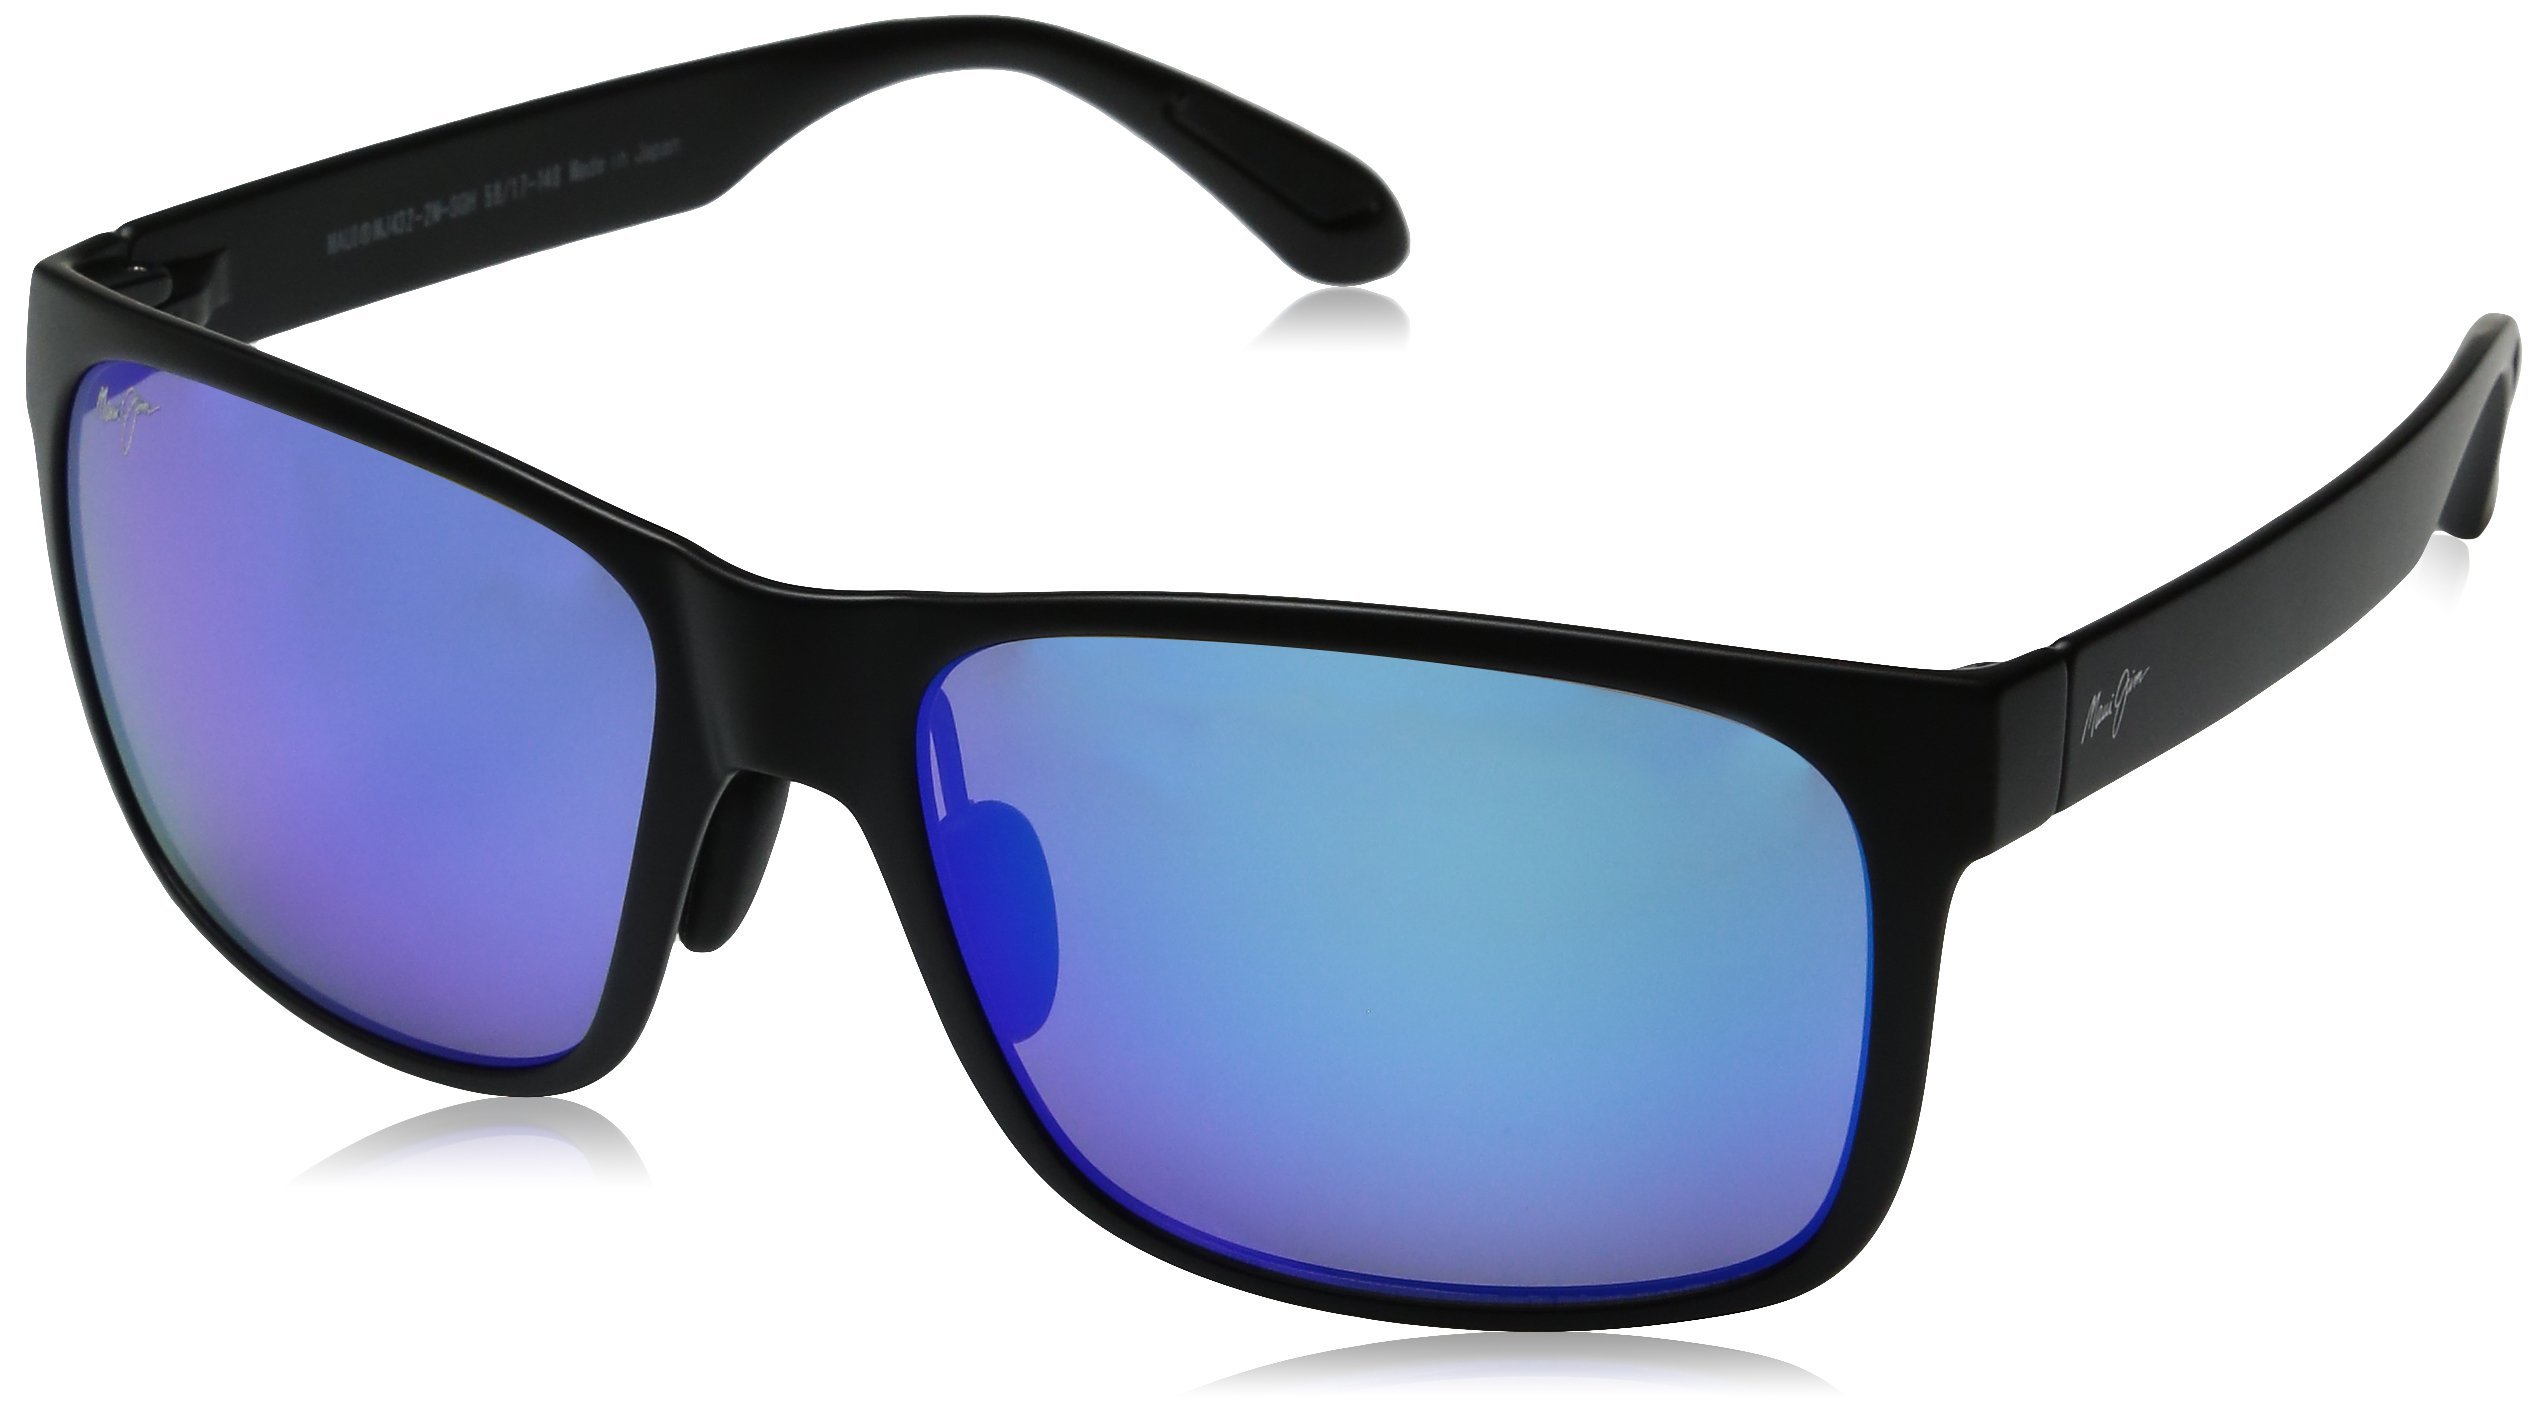 Maui Jim Red Sands Sunglasses - B432-2M Matte Black (Blue Hawaii Lens) - 59mm